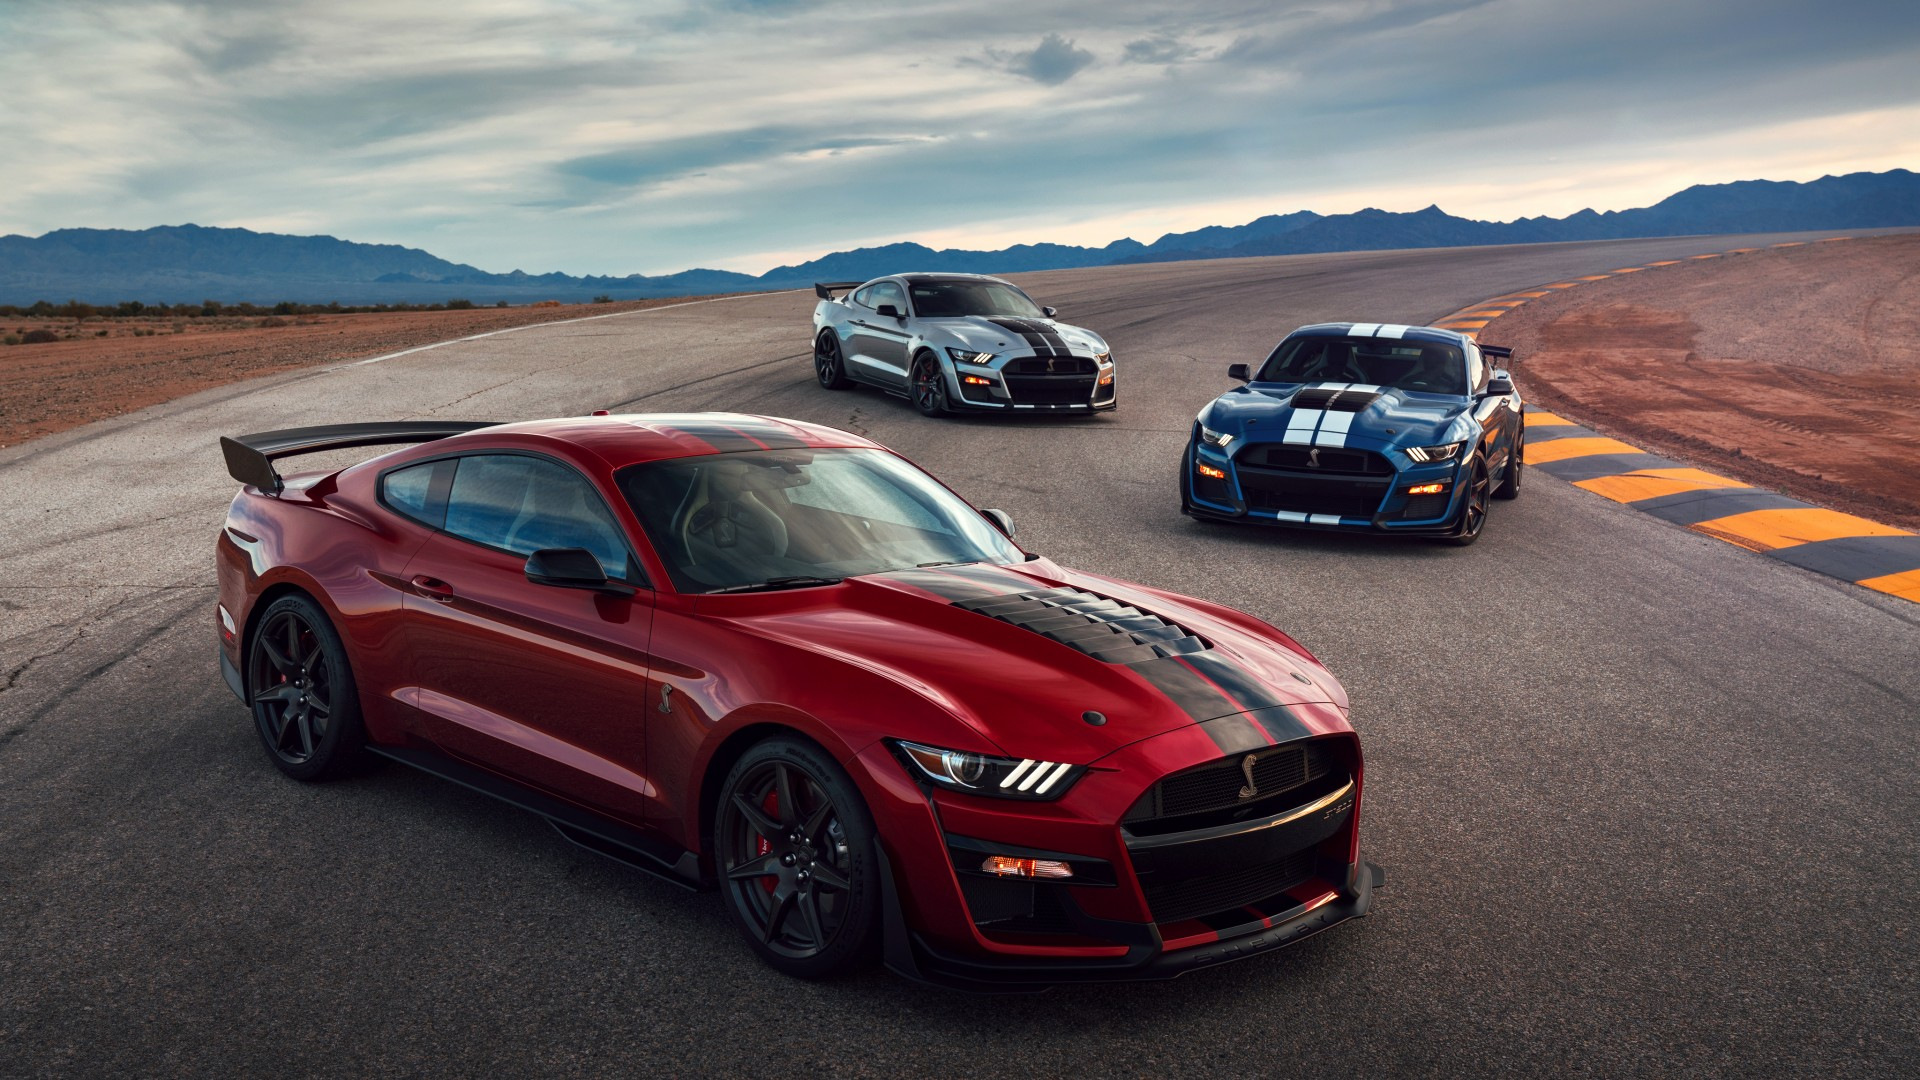 2020 Ford Mustang Shelby GT500 4K 3 Wallpaper | HD Car Wallpapers | ID #11889